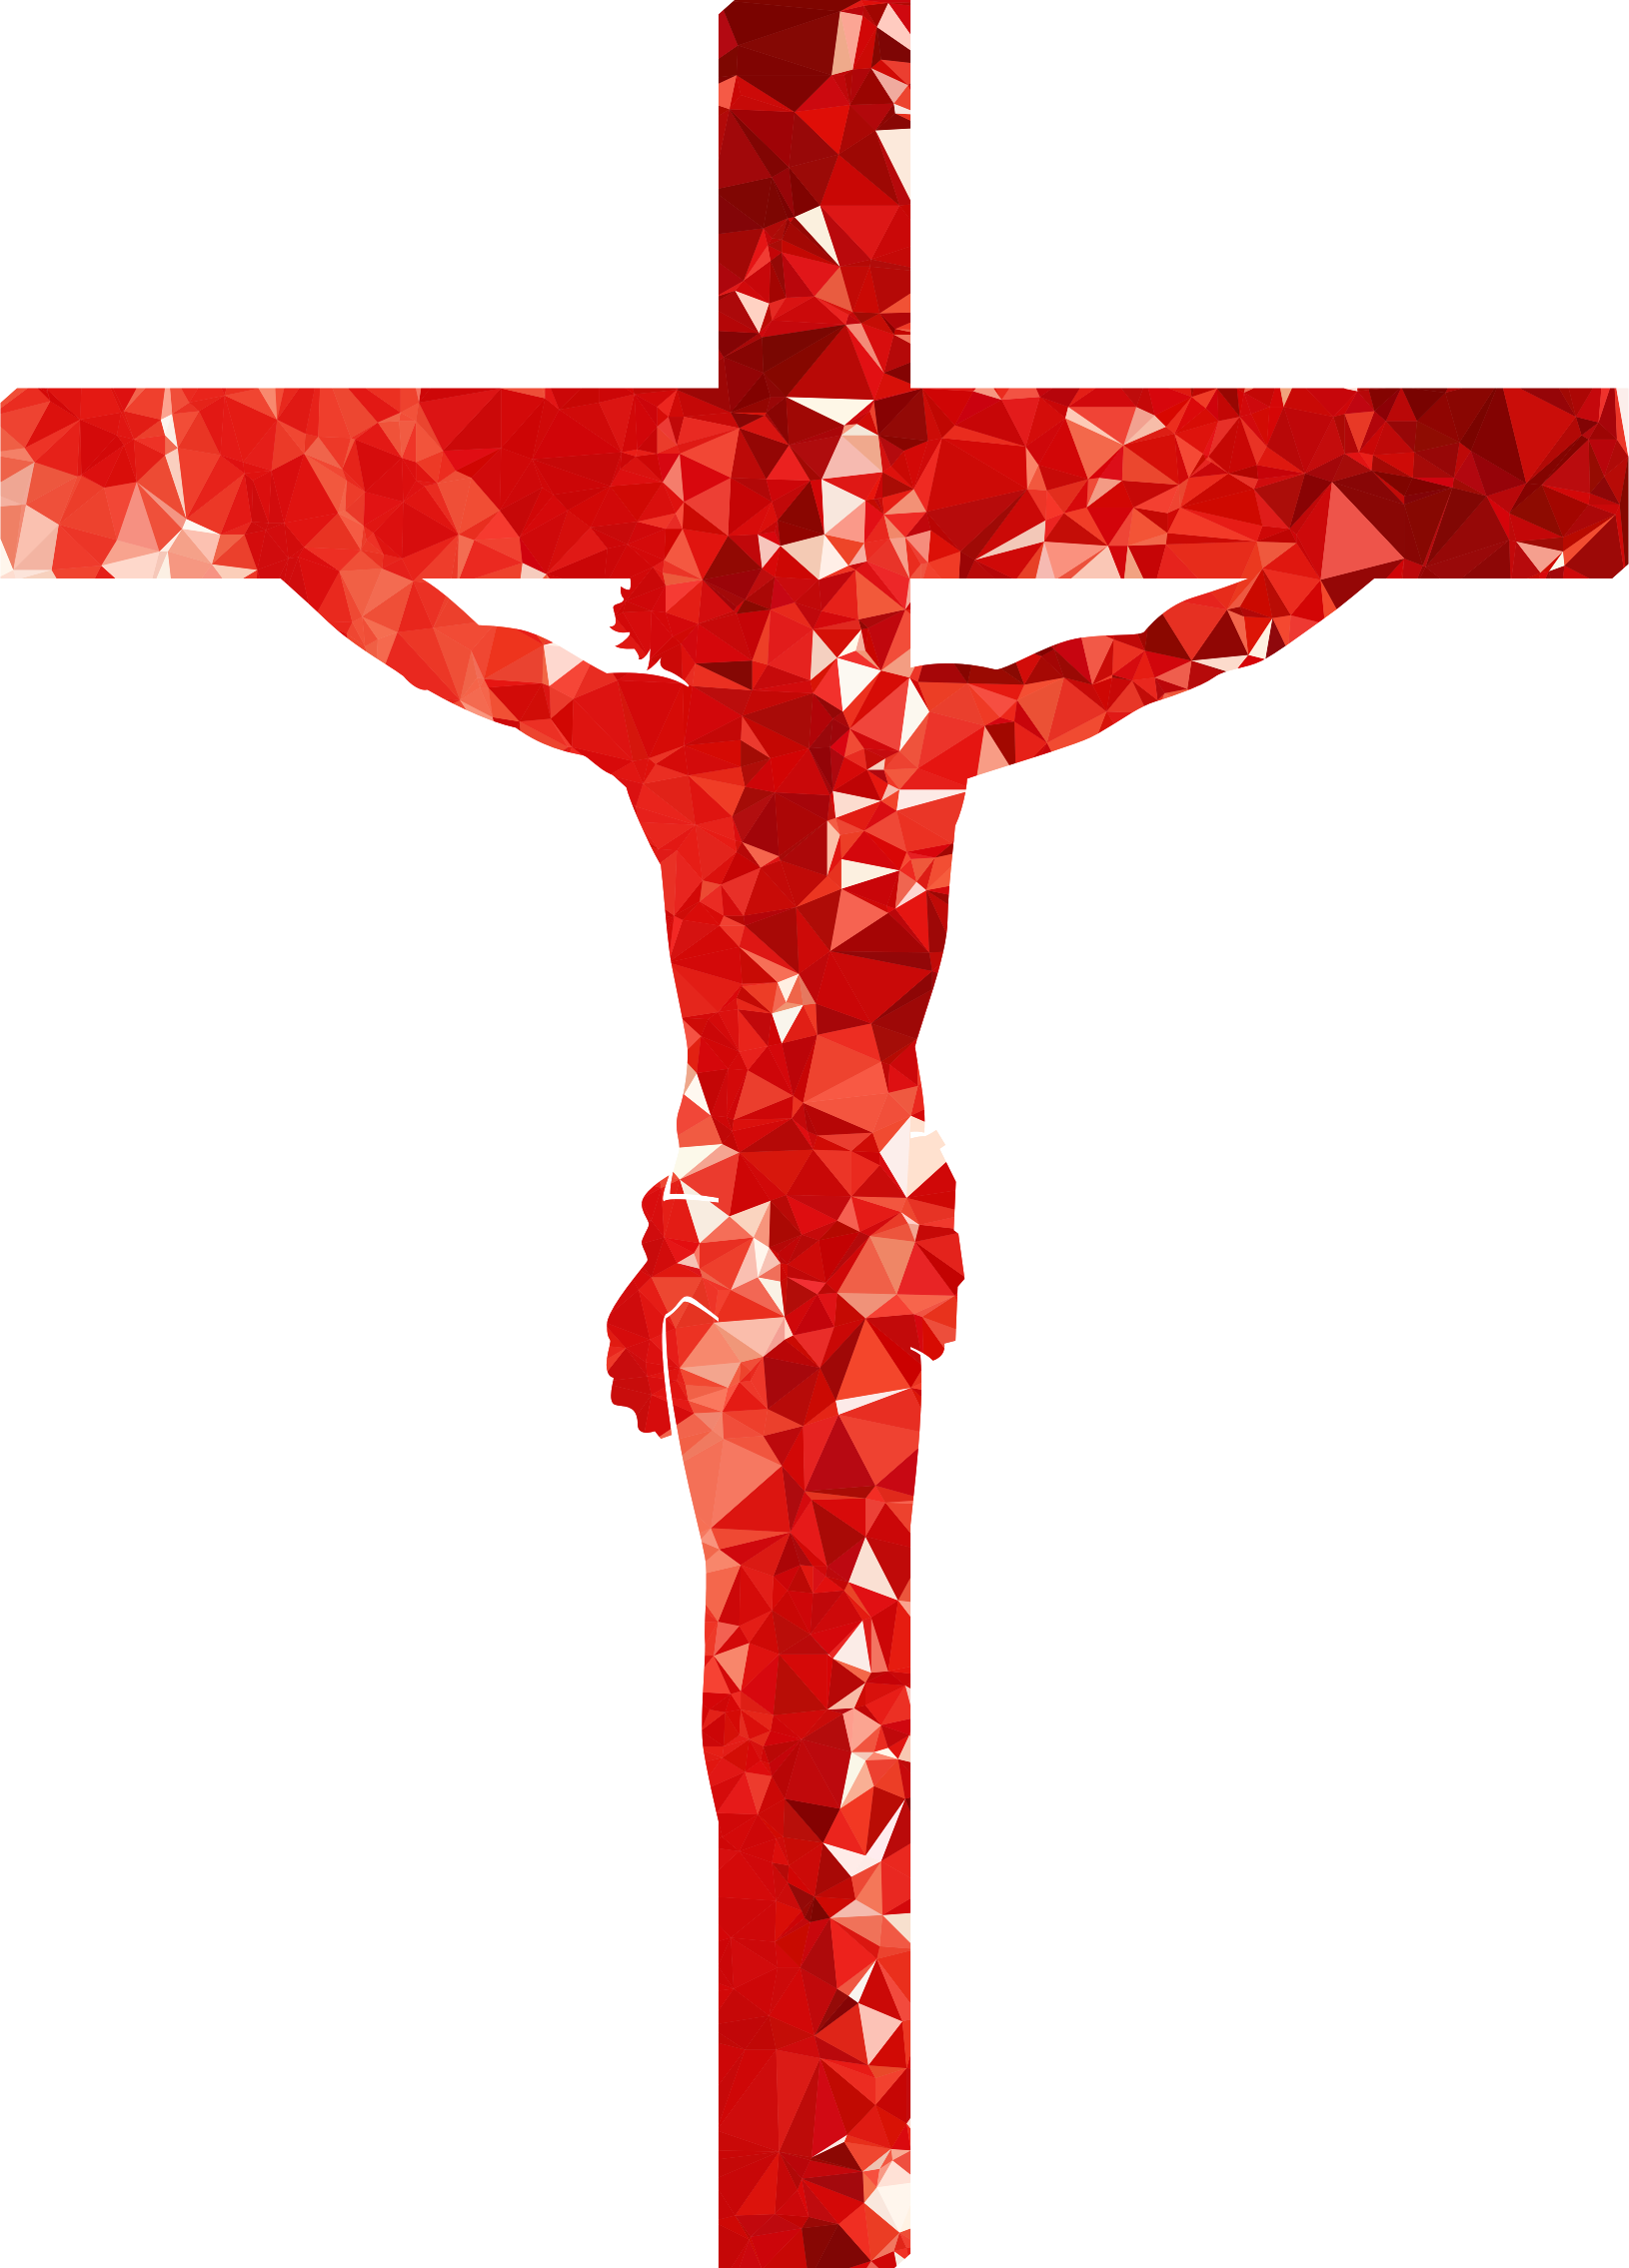 Crucifix clipart big cross. Ruby image png